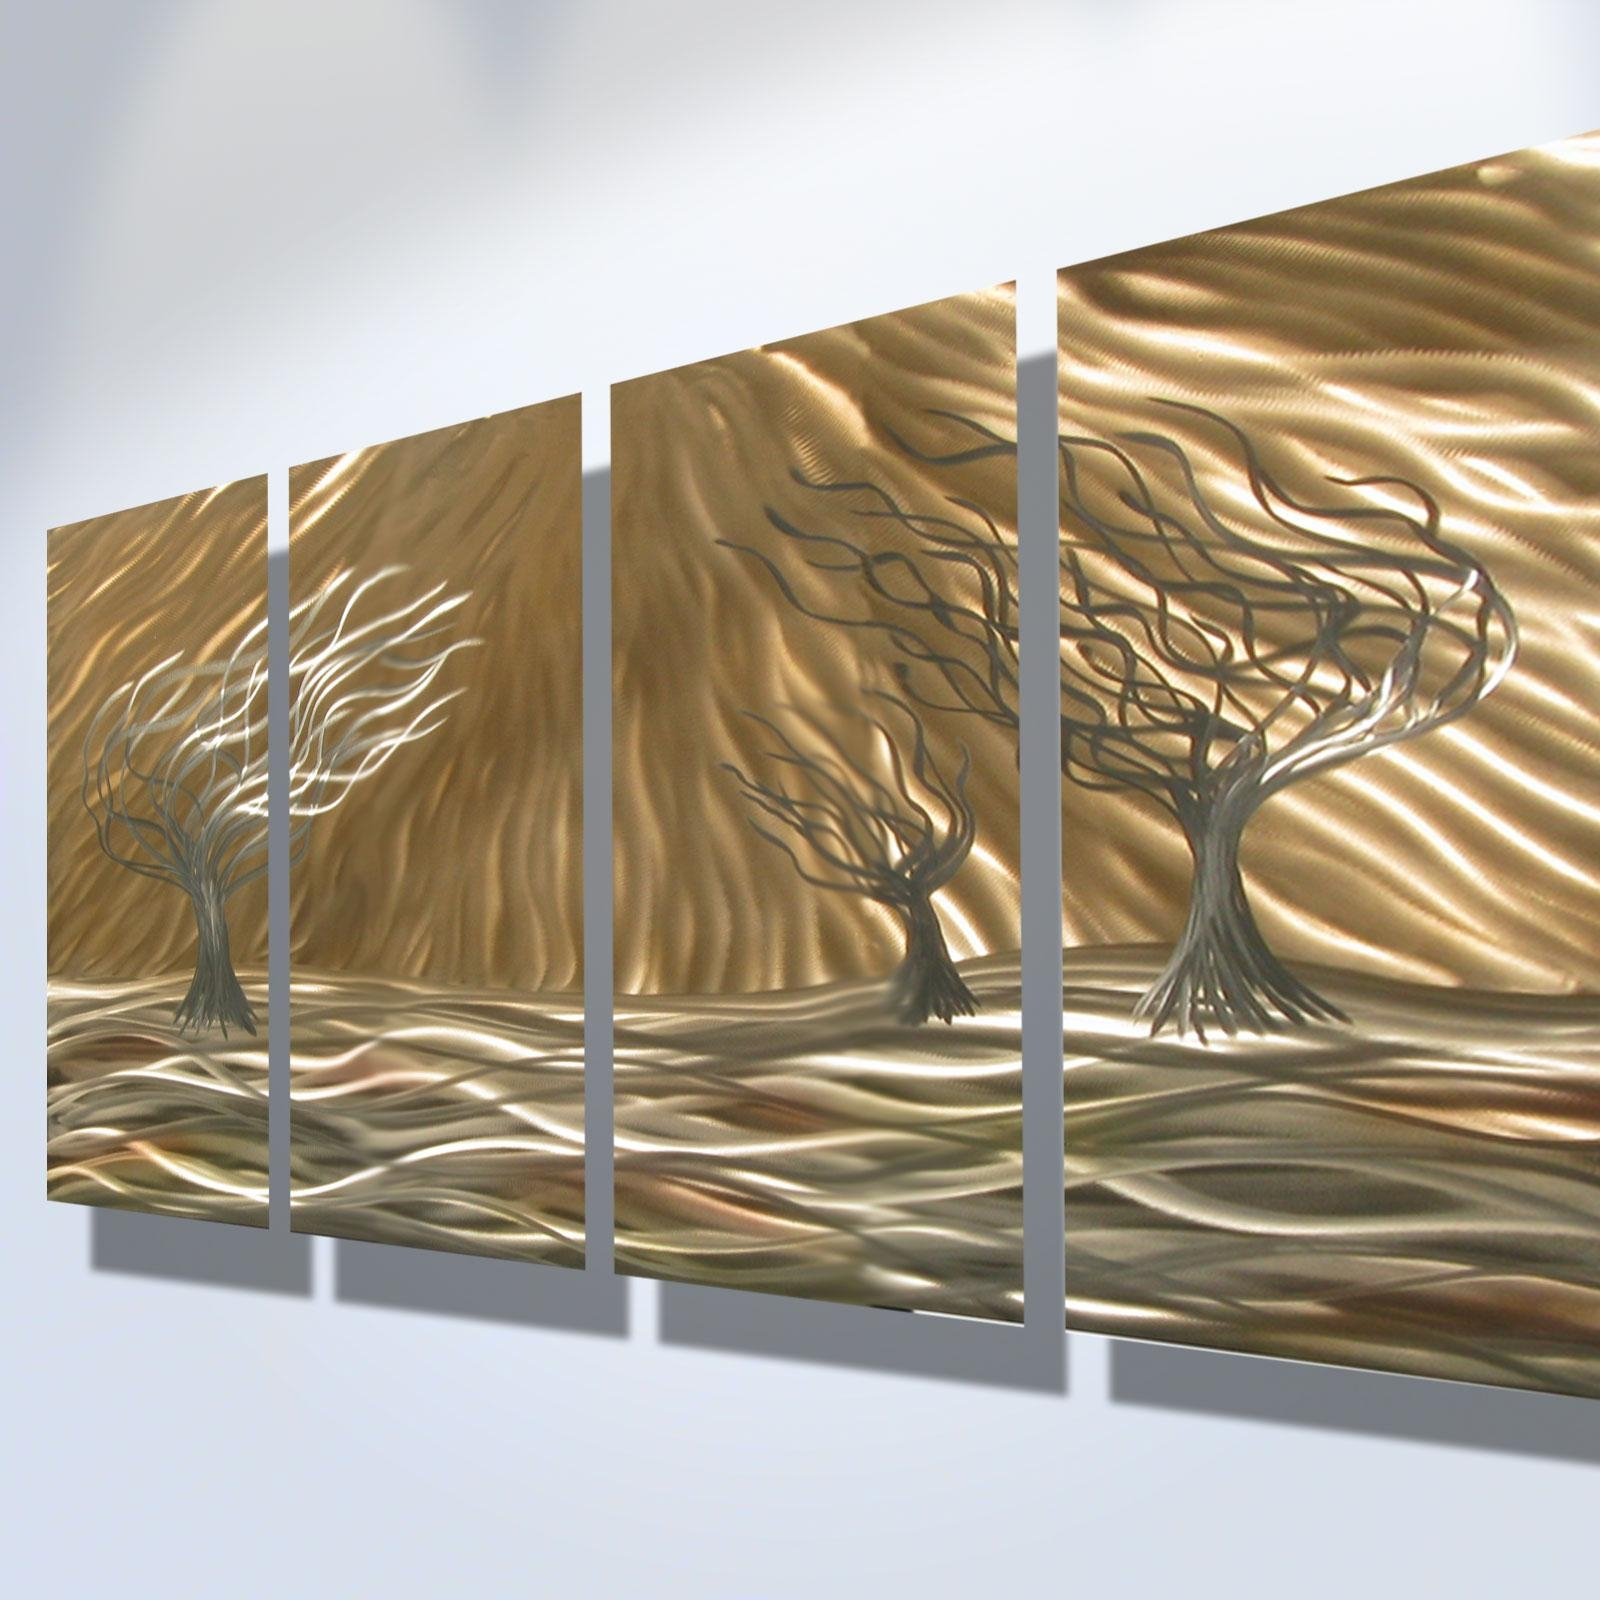 3 Trees 4 Panel - Abstract Metal Wall Art Contemporary Modern pertaining to Metal Abstract Wall Art